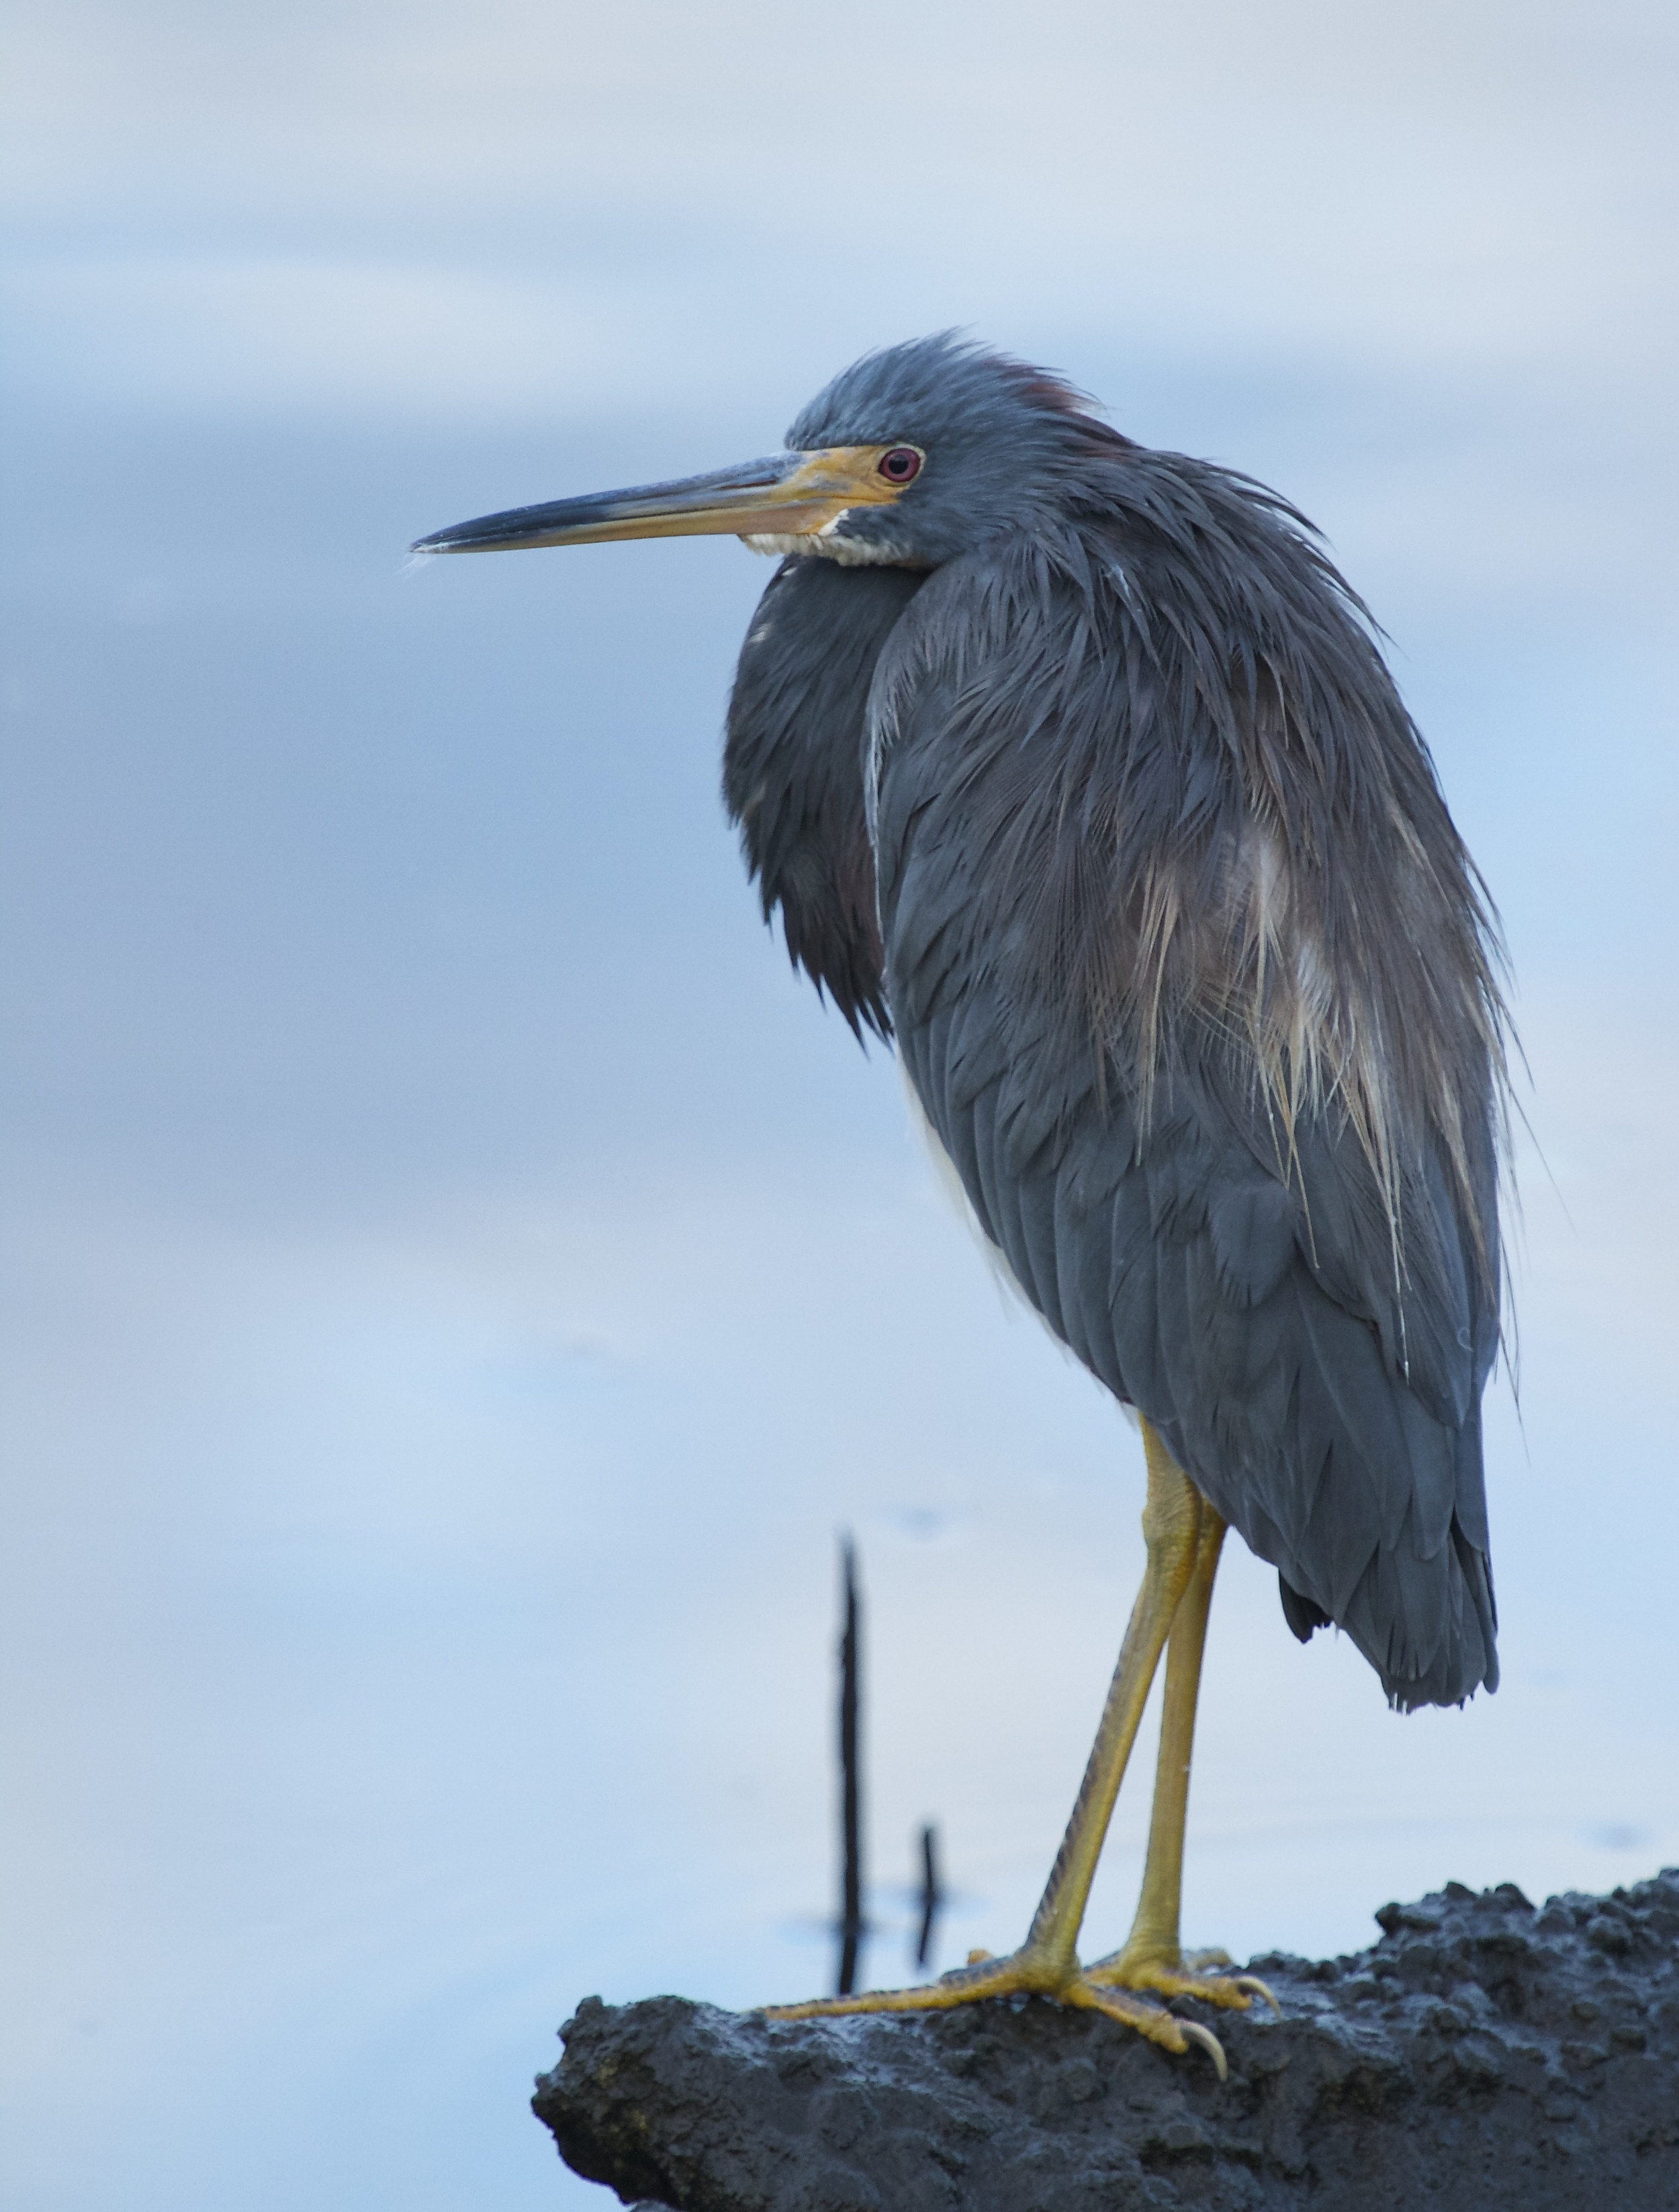 The early bird, a Tricolored Heron greets me in the predawn light and patiently waits..